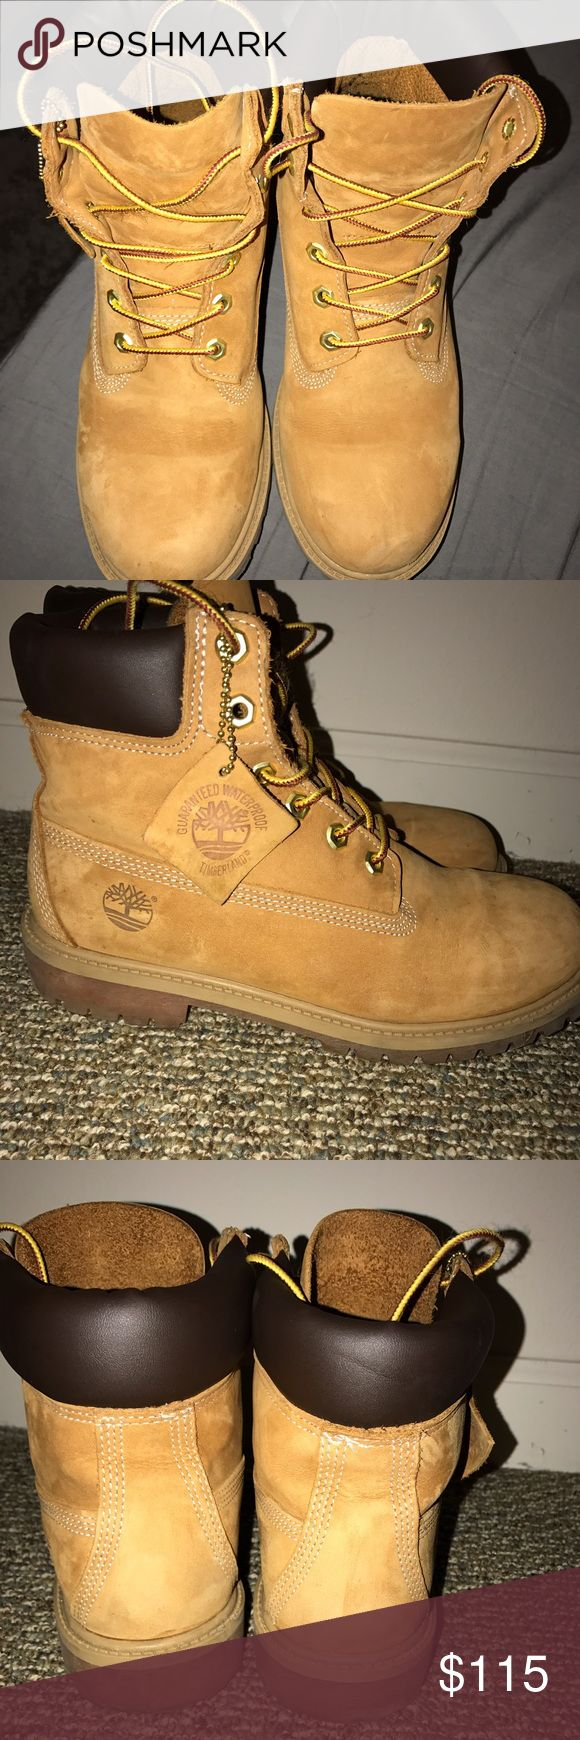 Women's Timberlands! Basically new! Women's 6 inch premium water proof boots. Worn less then 3X. Bought straight from Timberland website. Great condition! Timberland Shoes Winter & Rain Boots